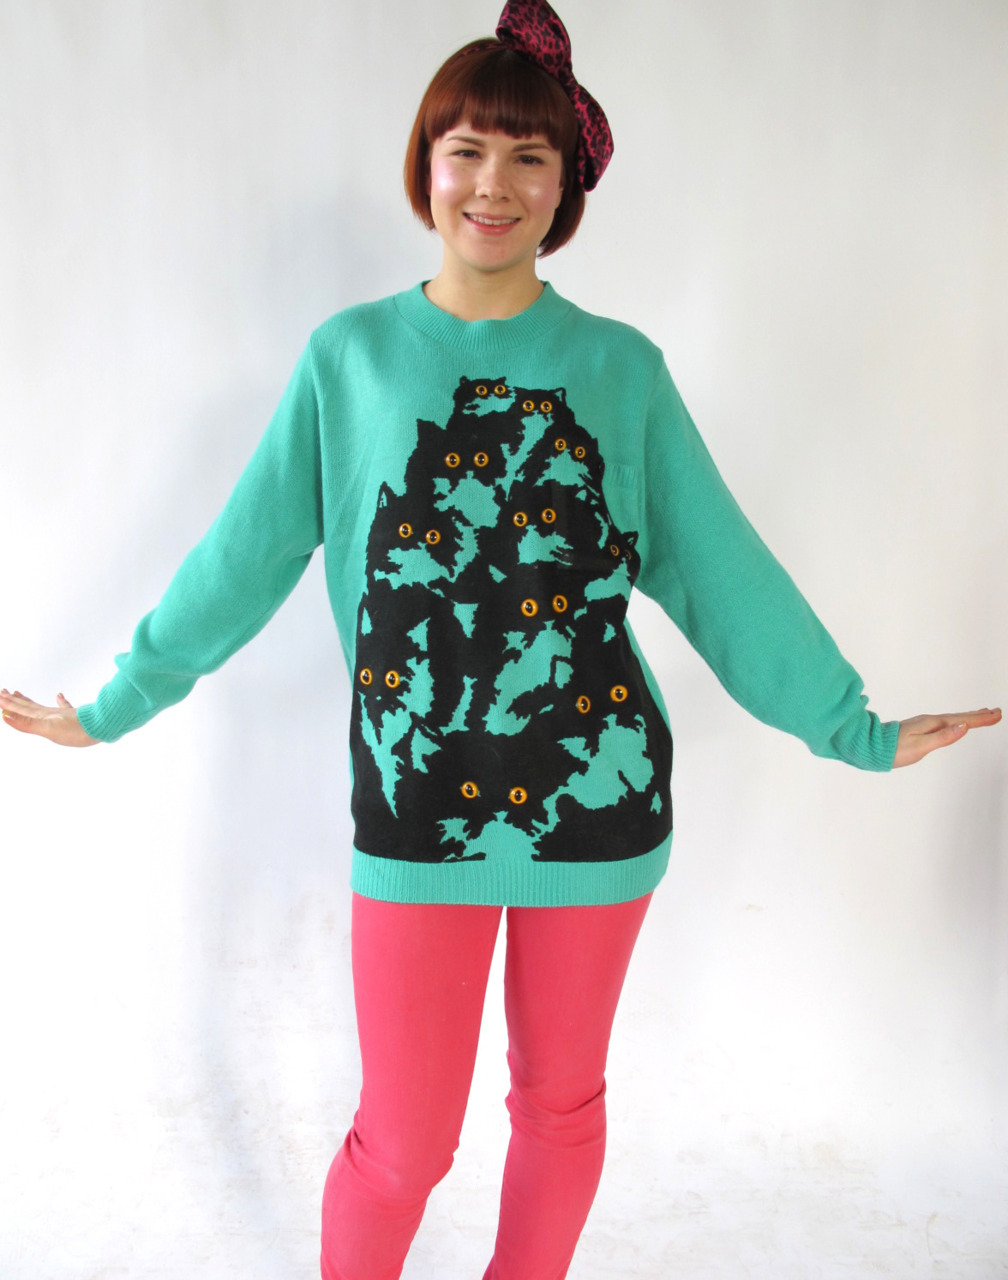 New Kitty Jumpers @ http://www.etsy.com/shop/PrettySnake ! Pretty Snake model Lizzy Colley @ http://connoisseurofcute.tumblr.com/